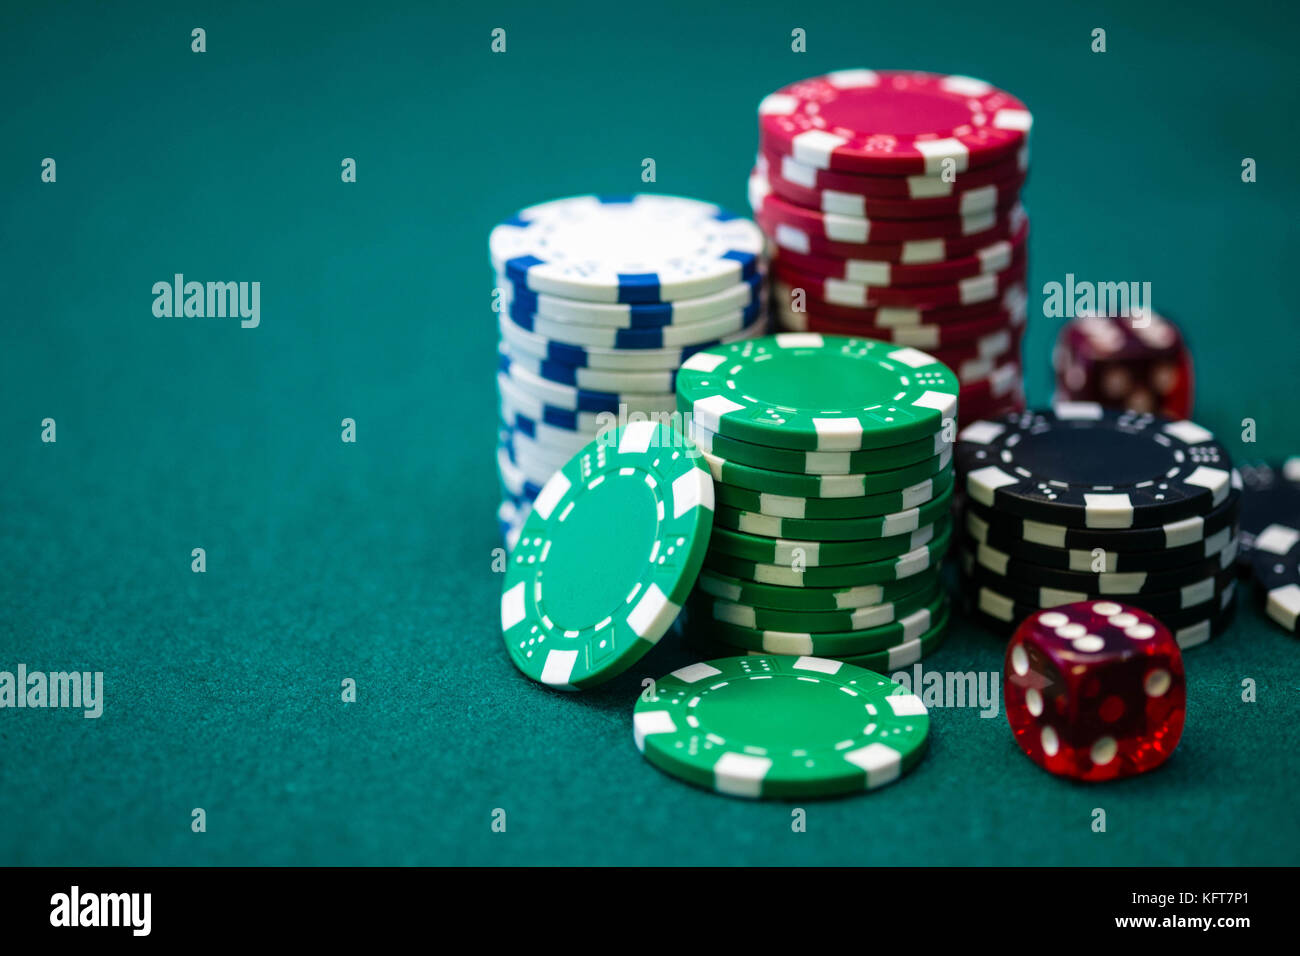 Poker Wallpaper High Resolution Stock Photography And Images Alamy